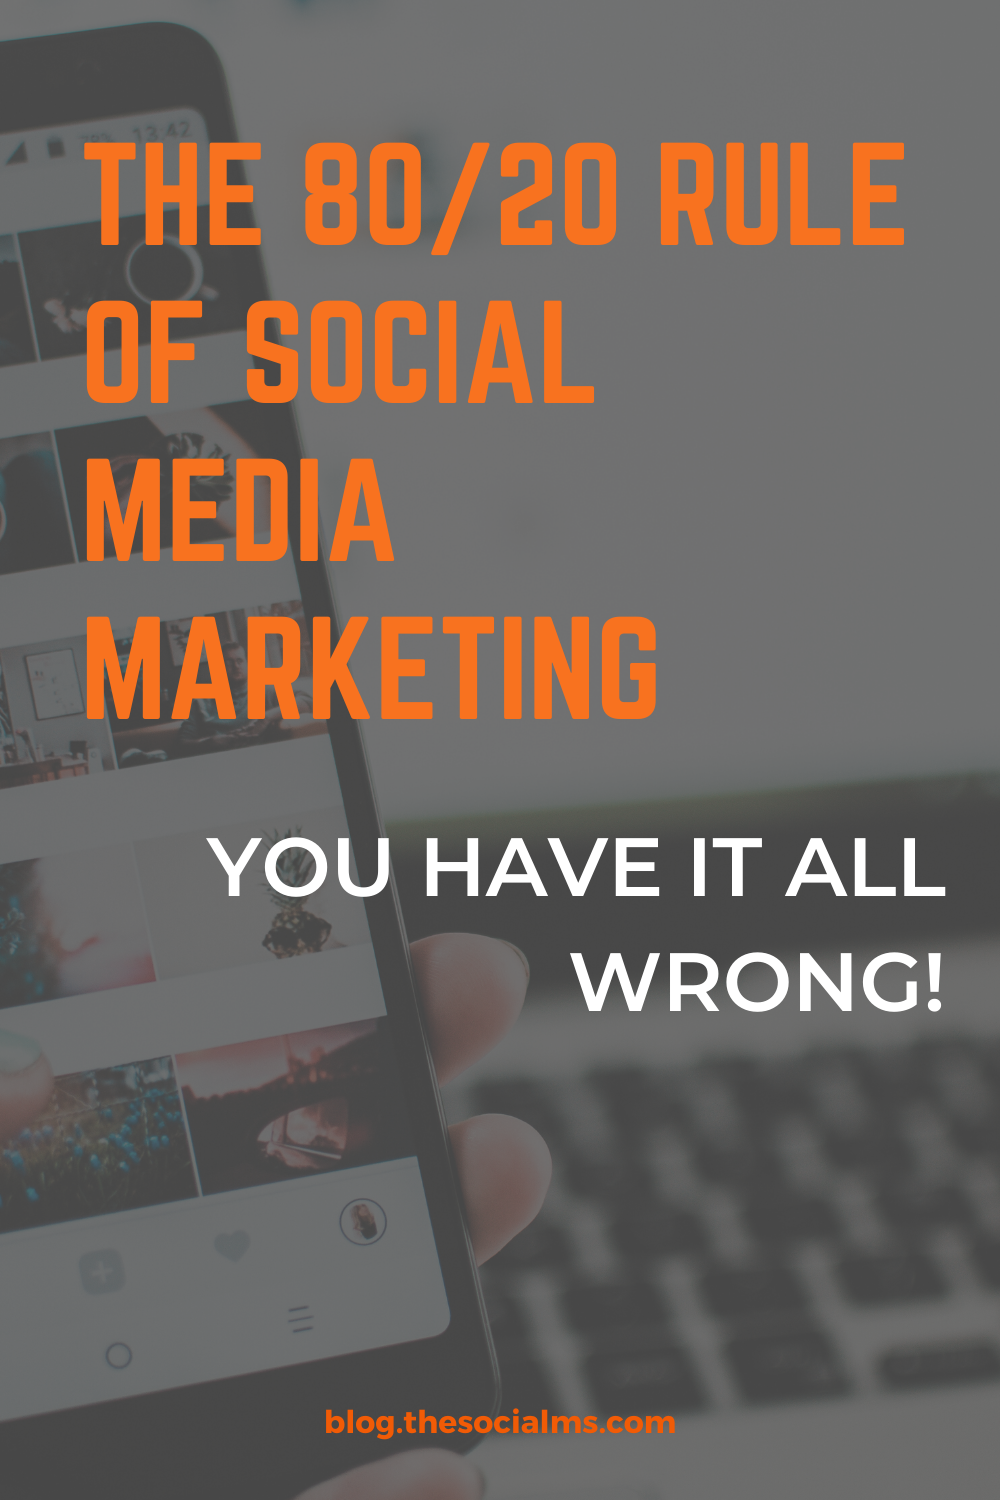 If you are promoting your blog, product or brand via social media, you have probably stumbled across the 80/20 rule of social media marketing.  But the chances are high that you have heard this rule all wrong. #socialmedia #socialmediatips #socialmediamarketing #socialmediastrategy #digitalmarketing